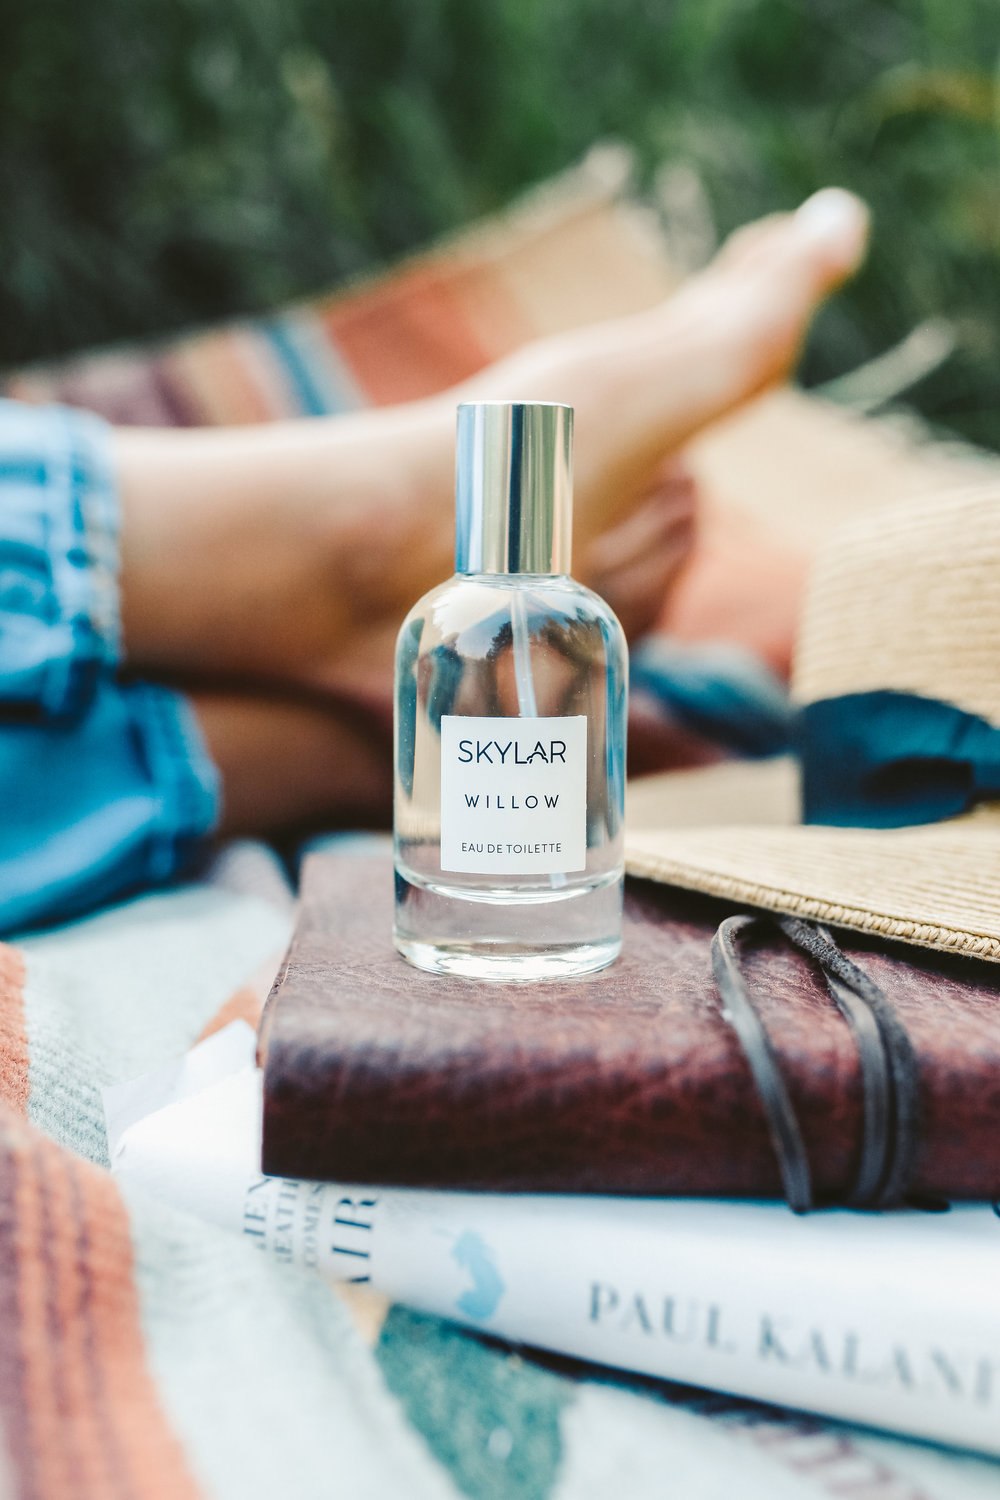 skylar's new scent willow makes you feel like you're out in nature